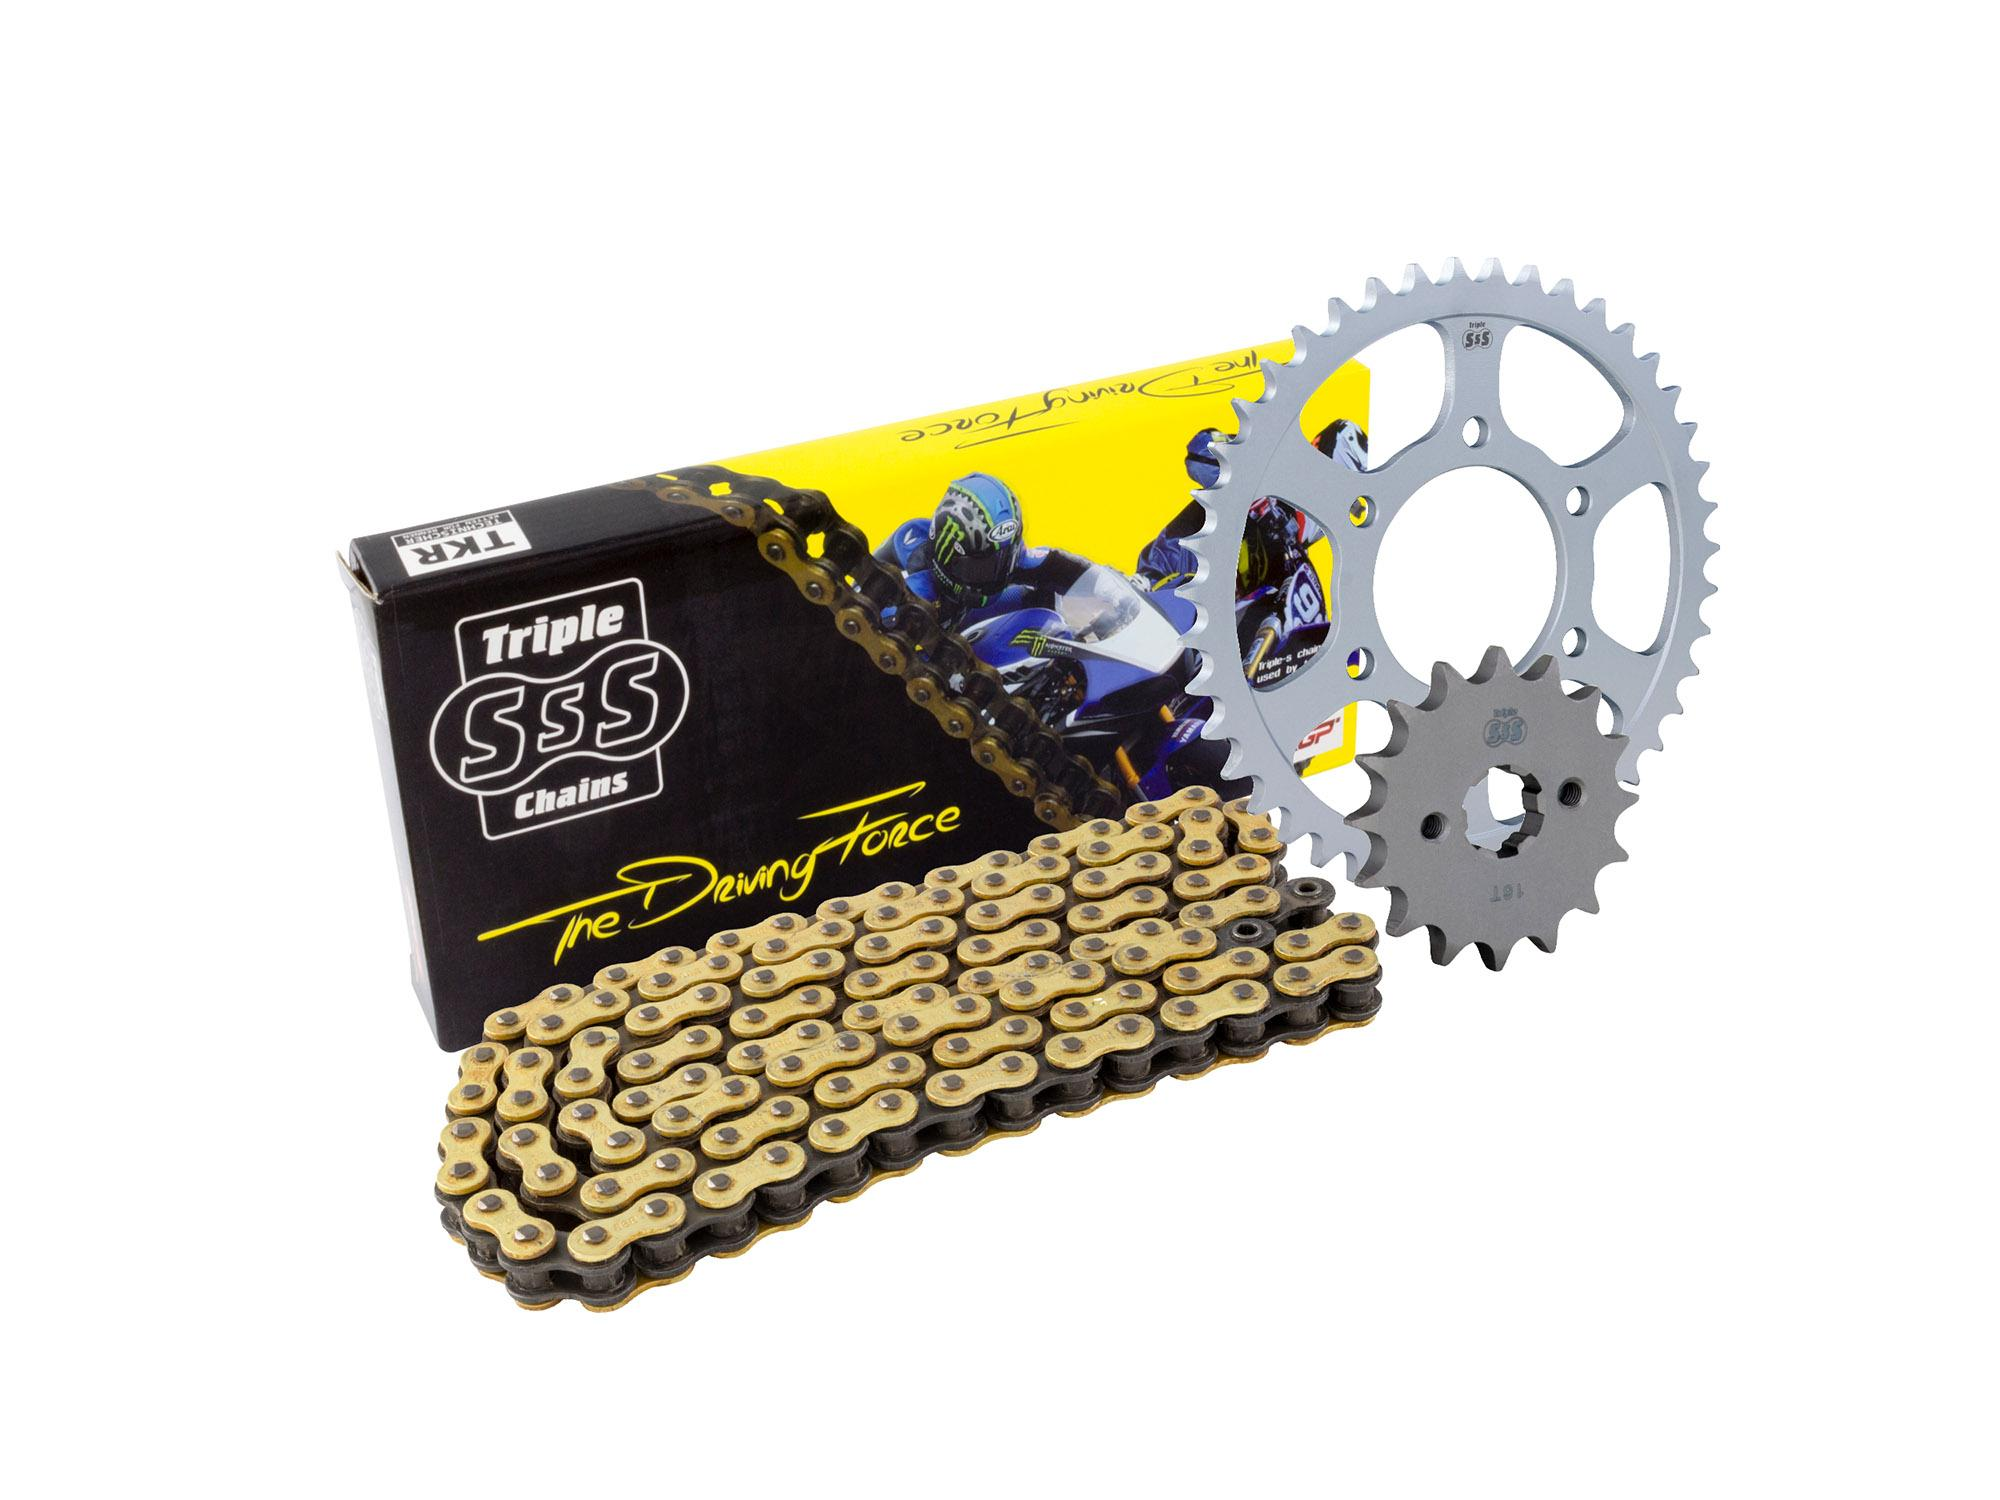 Yamaha YZF-R1 15-16 Chain & Sprocket Kit: 16T Front, 41T Rear, HD O-Ring Gold Chain 525H 114 Link